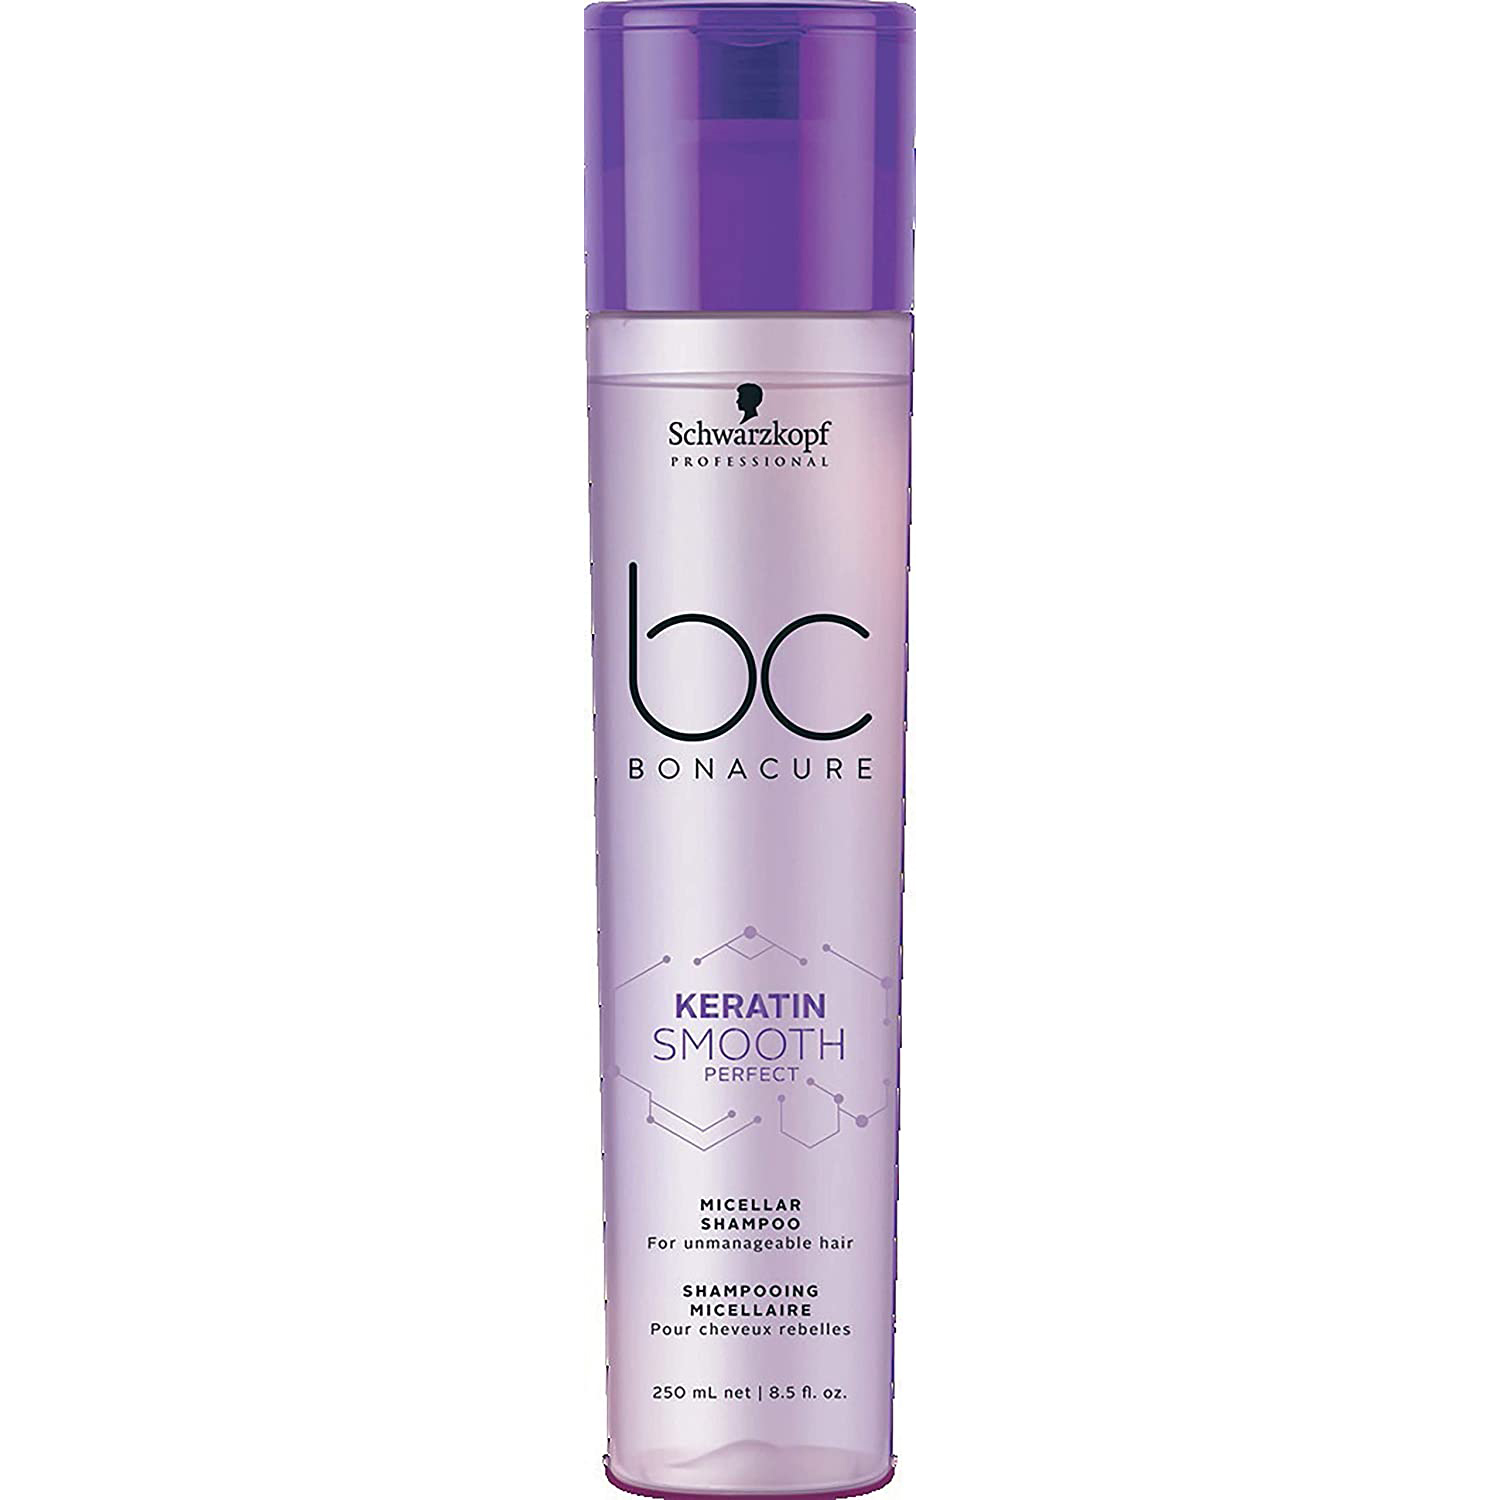 Schwarzkopf Professional Bonacure Keratin Smooth Perfect Micellar Shampoo - 250ml